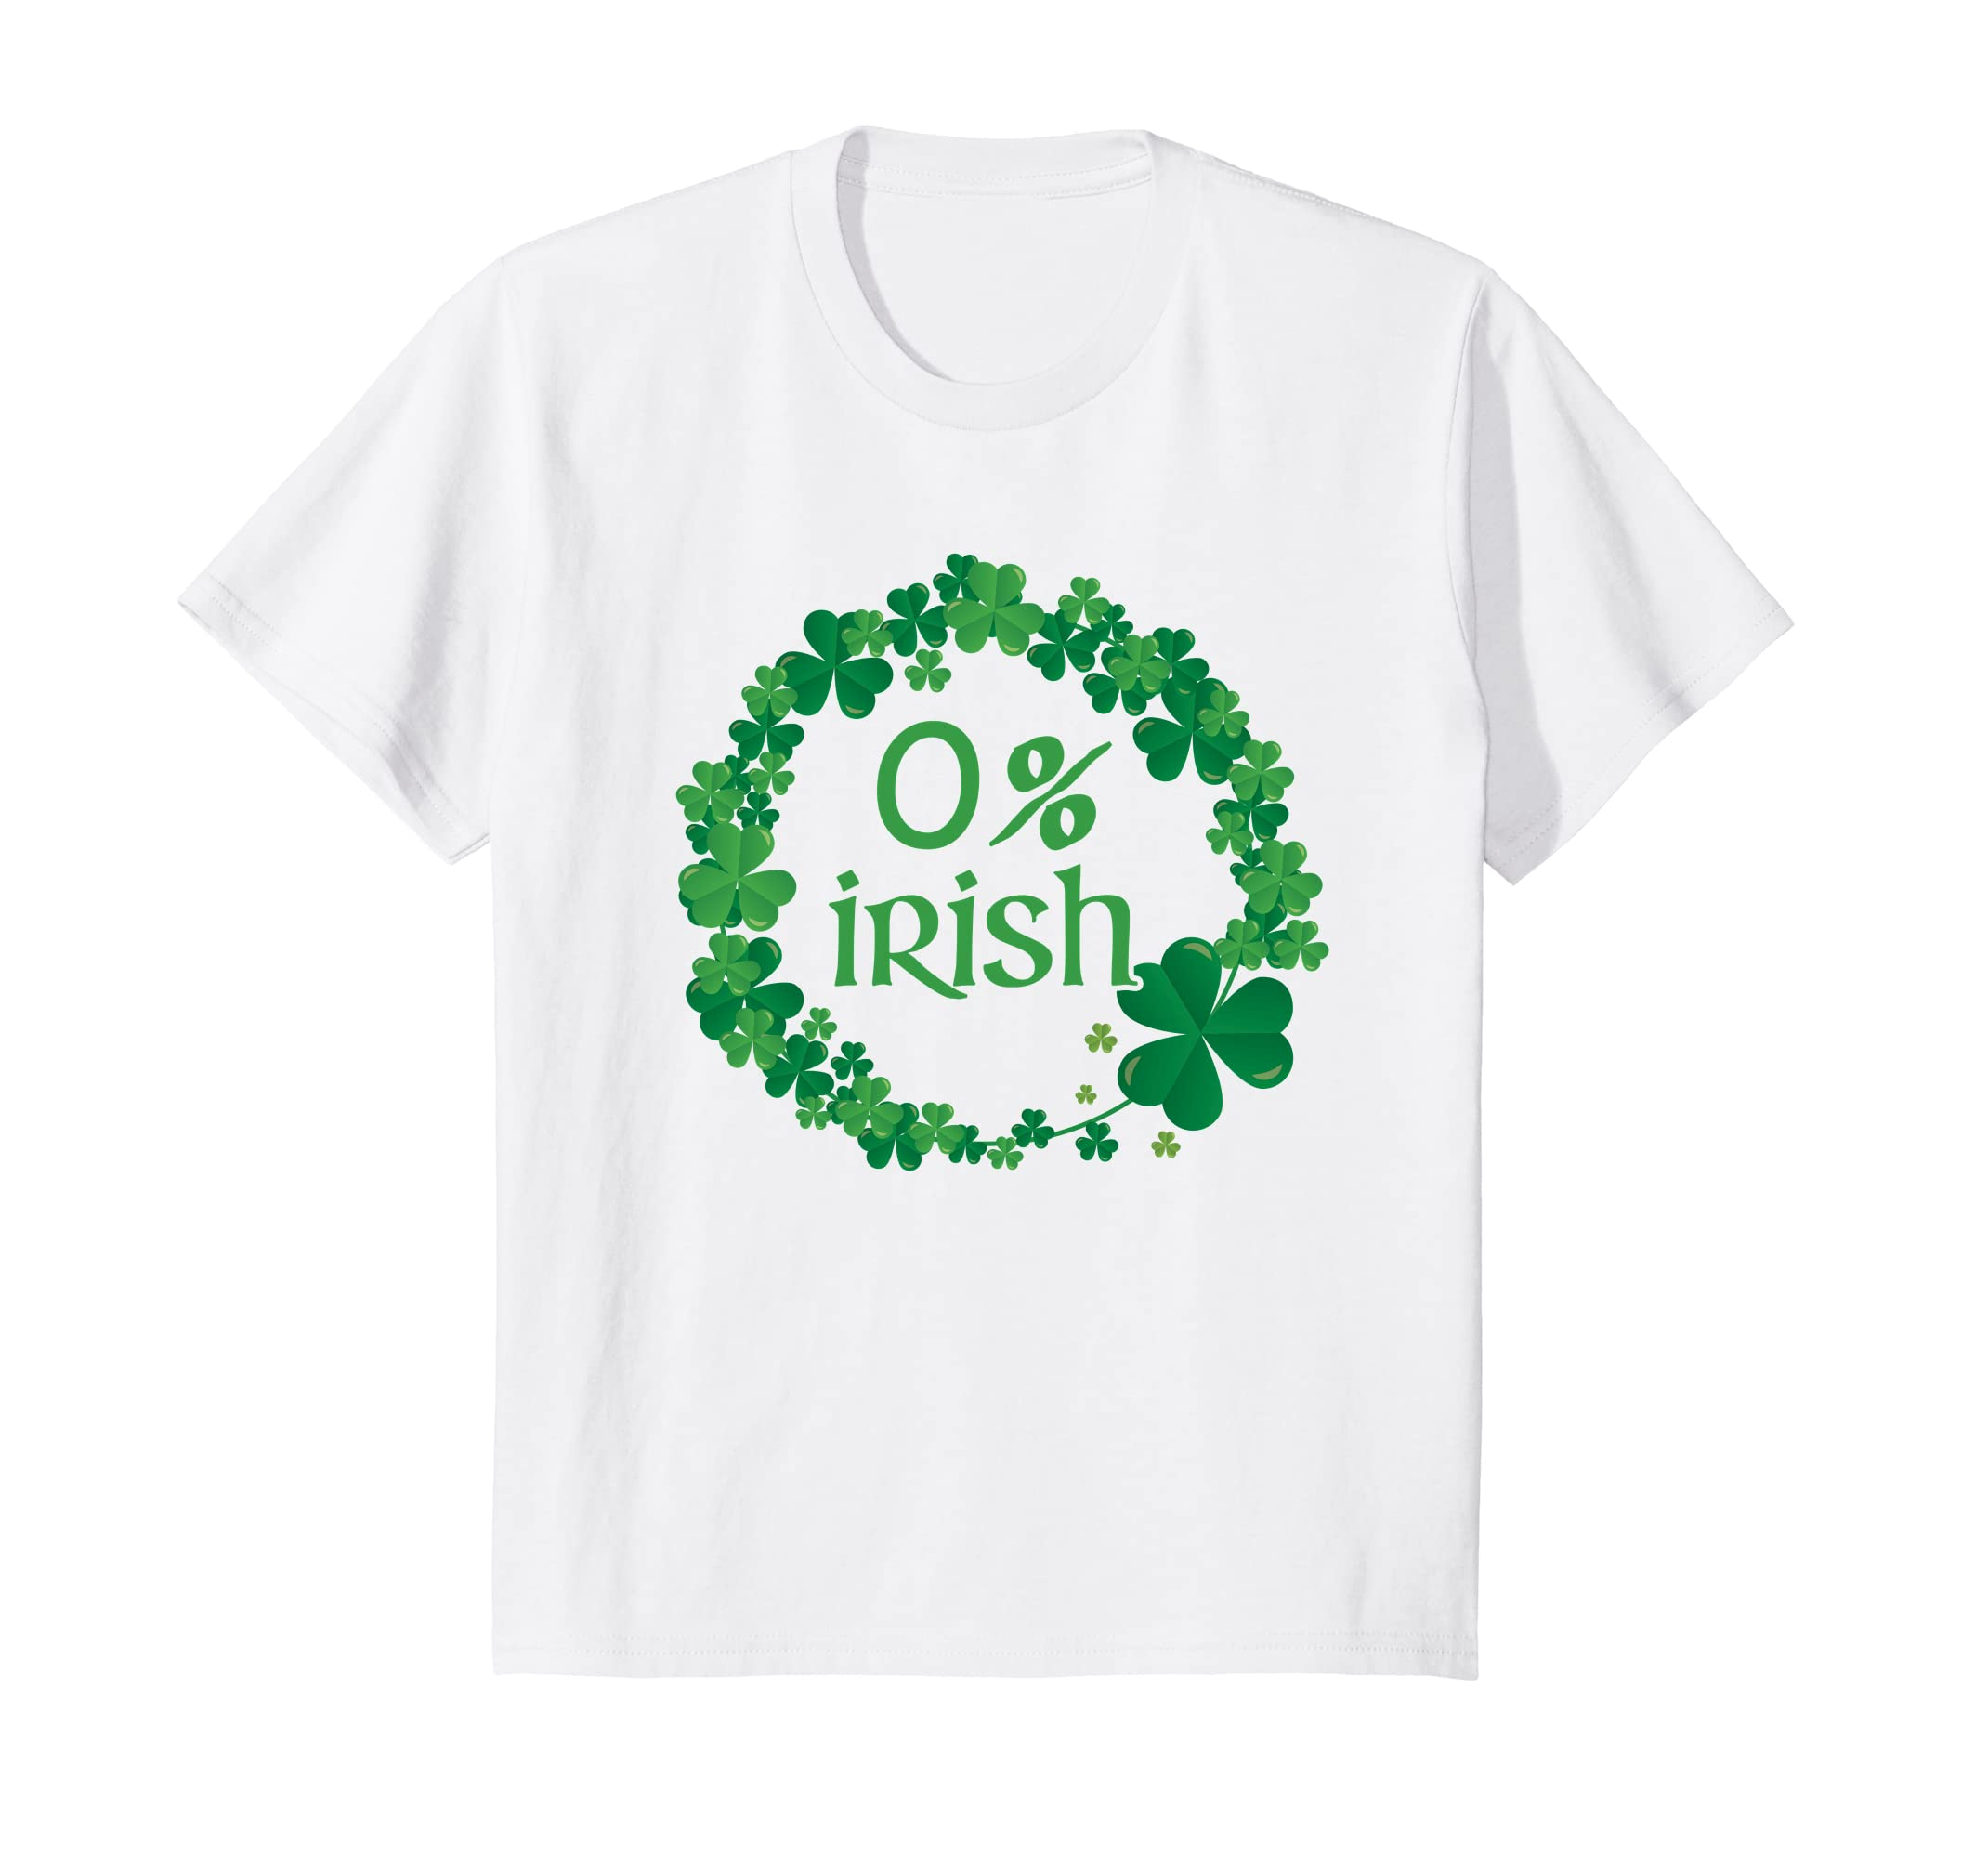 Happy Saint Patrick's Day Shirt Funny 0% Irish Shirt